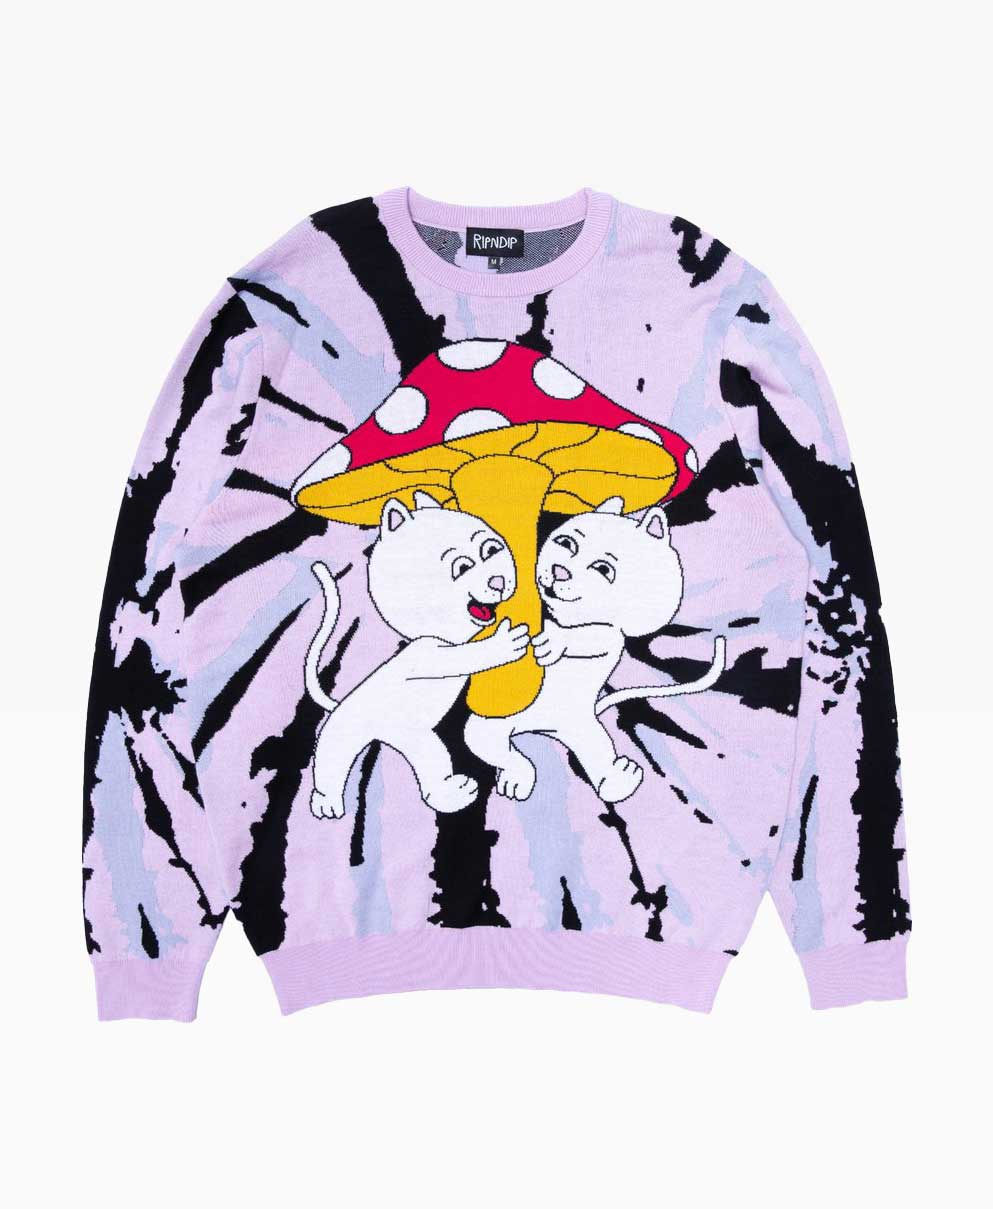 Ripndip Sharing Is Caring Crewneck Knit Sweater Front